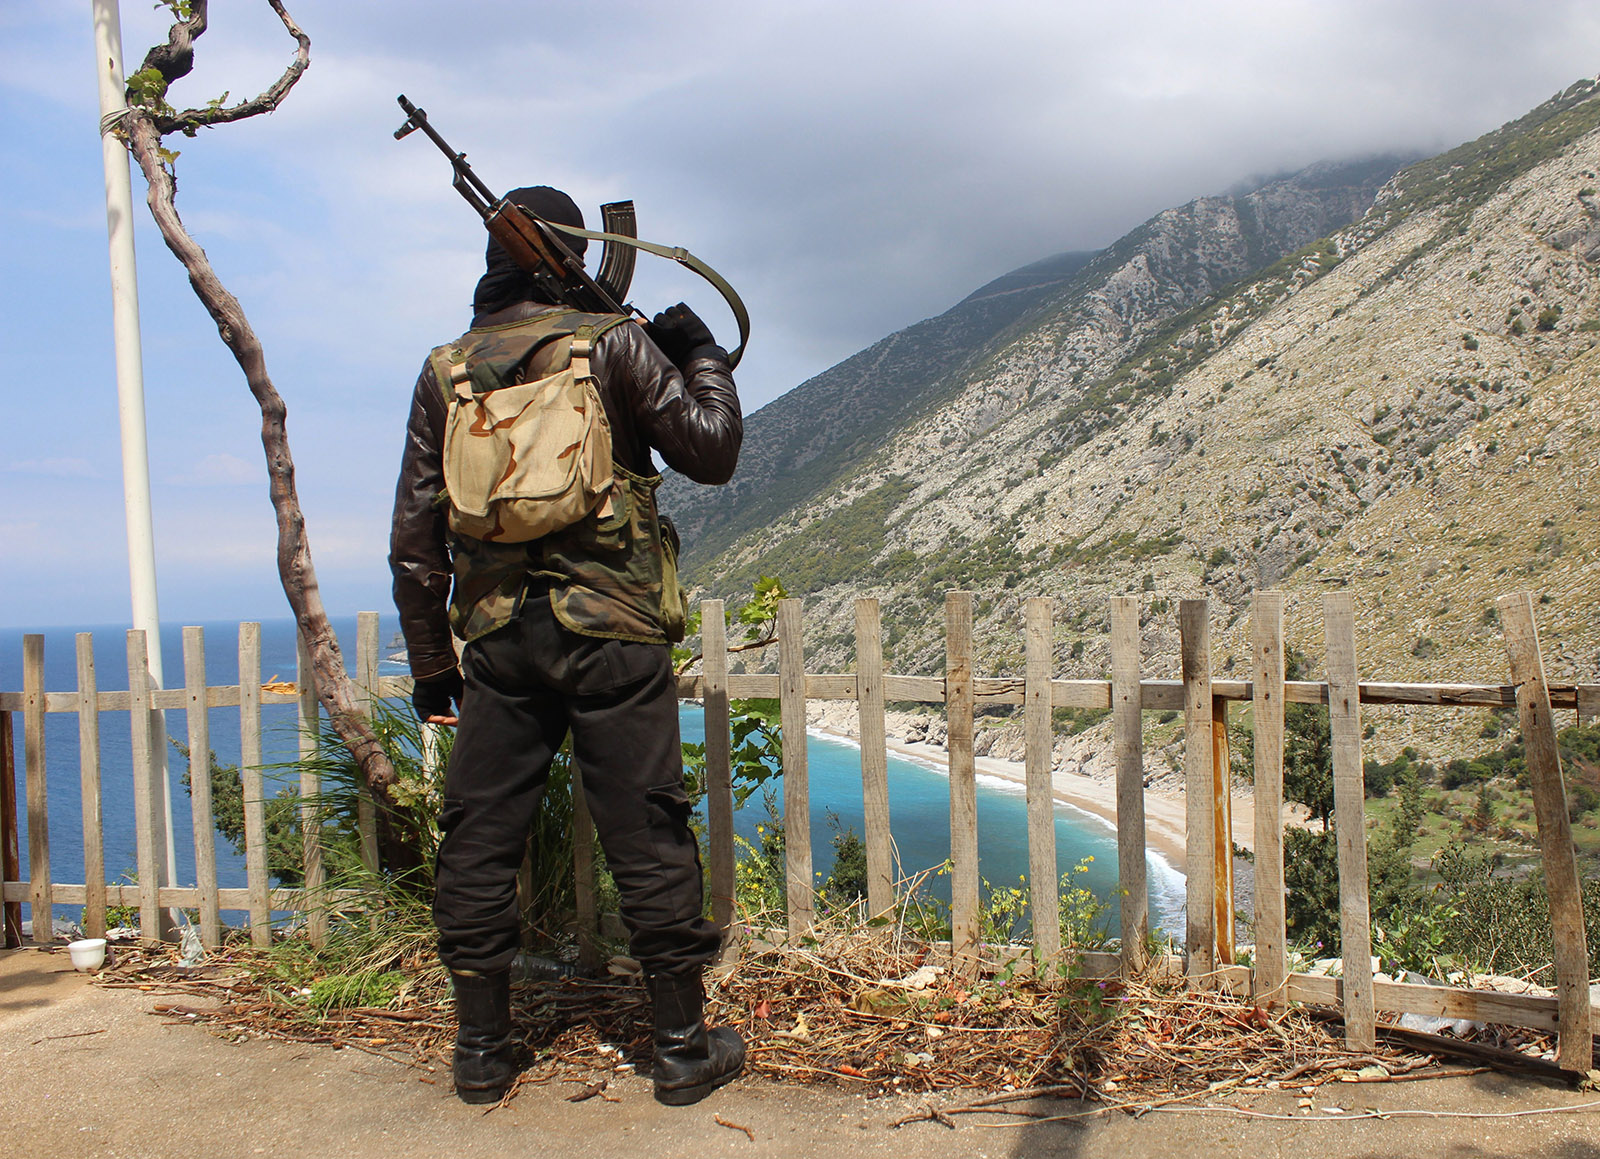 A fighter from the Ansar al-Sham brigade standing on a ridge in the northwestern Syrian province of Latakia during a rebel offensive against regime positions in the coastal heartland of President Bashar al-Assad's Alawi sect, 2014